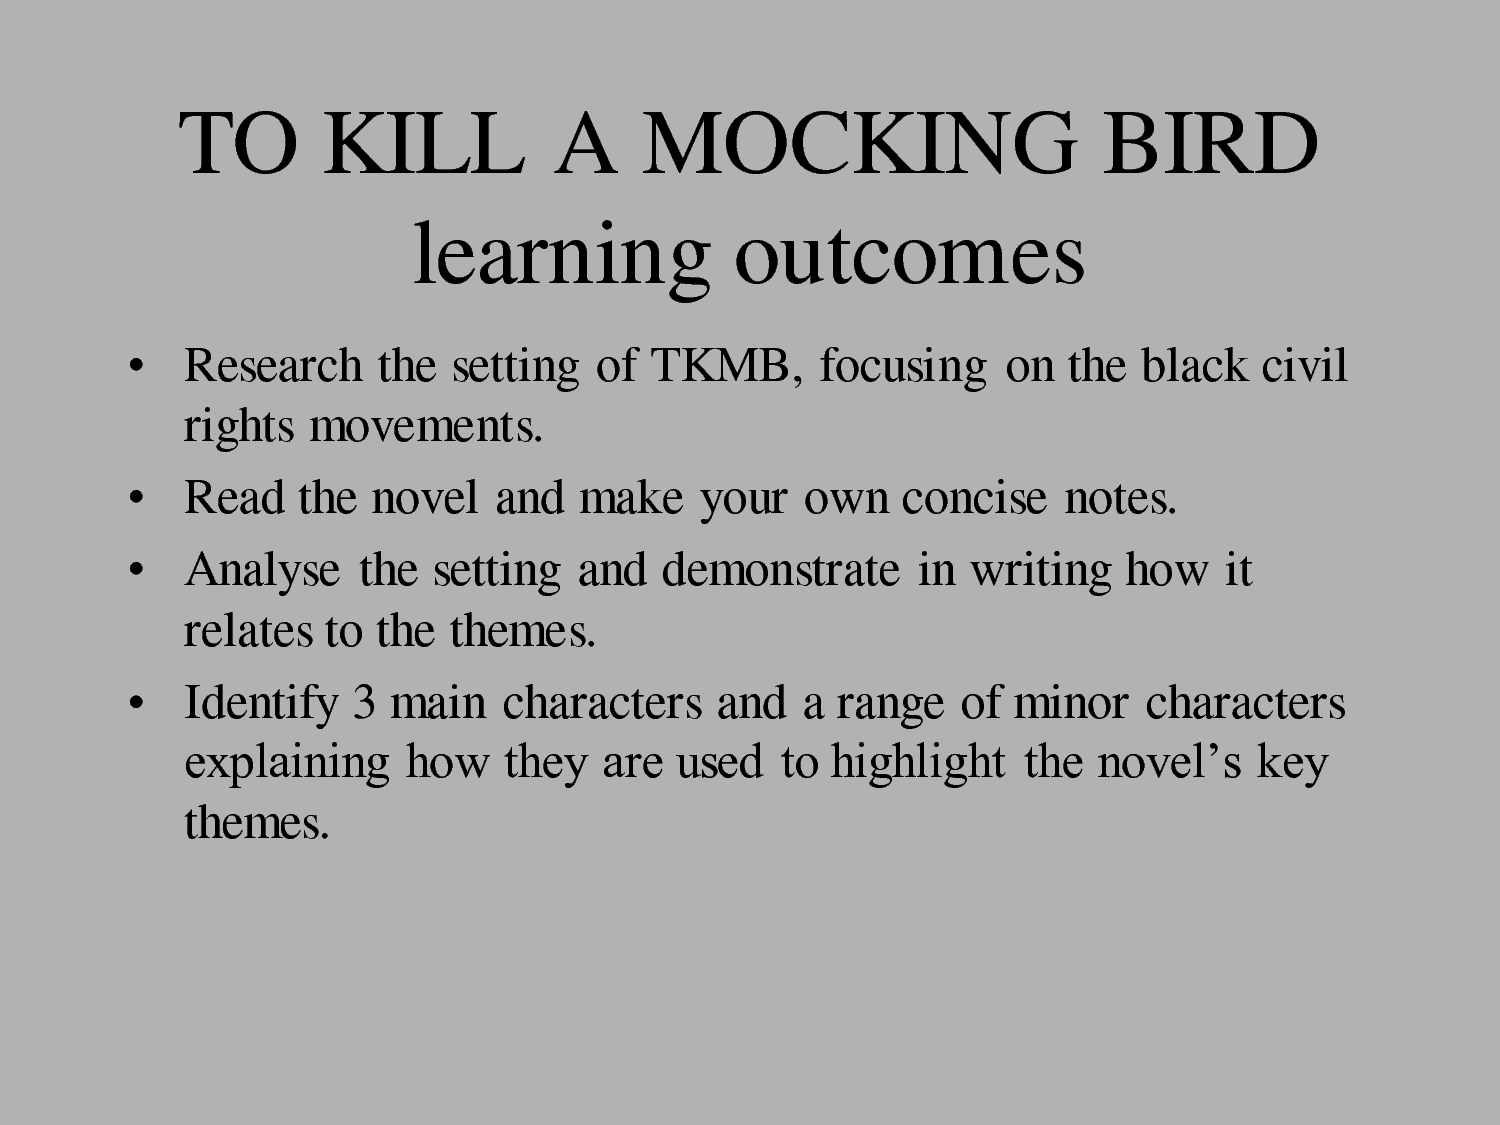 social discrimination in to kill a mocking bird Discover and share in to kill a mockingbird prejudice quotes explore our collection of motivational and famous quotes by authors you know and love.